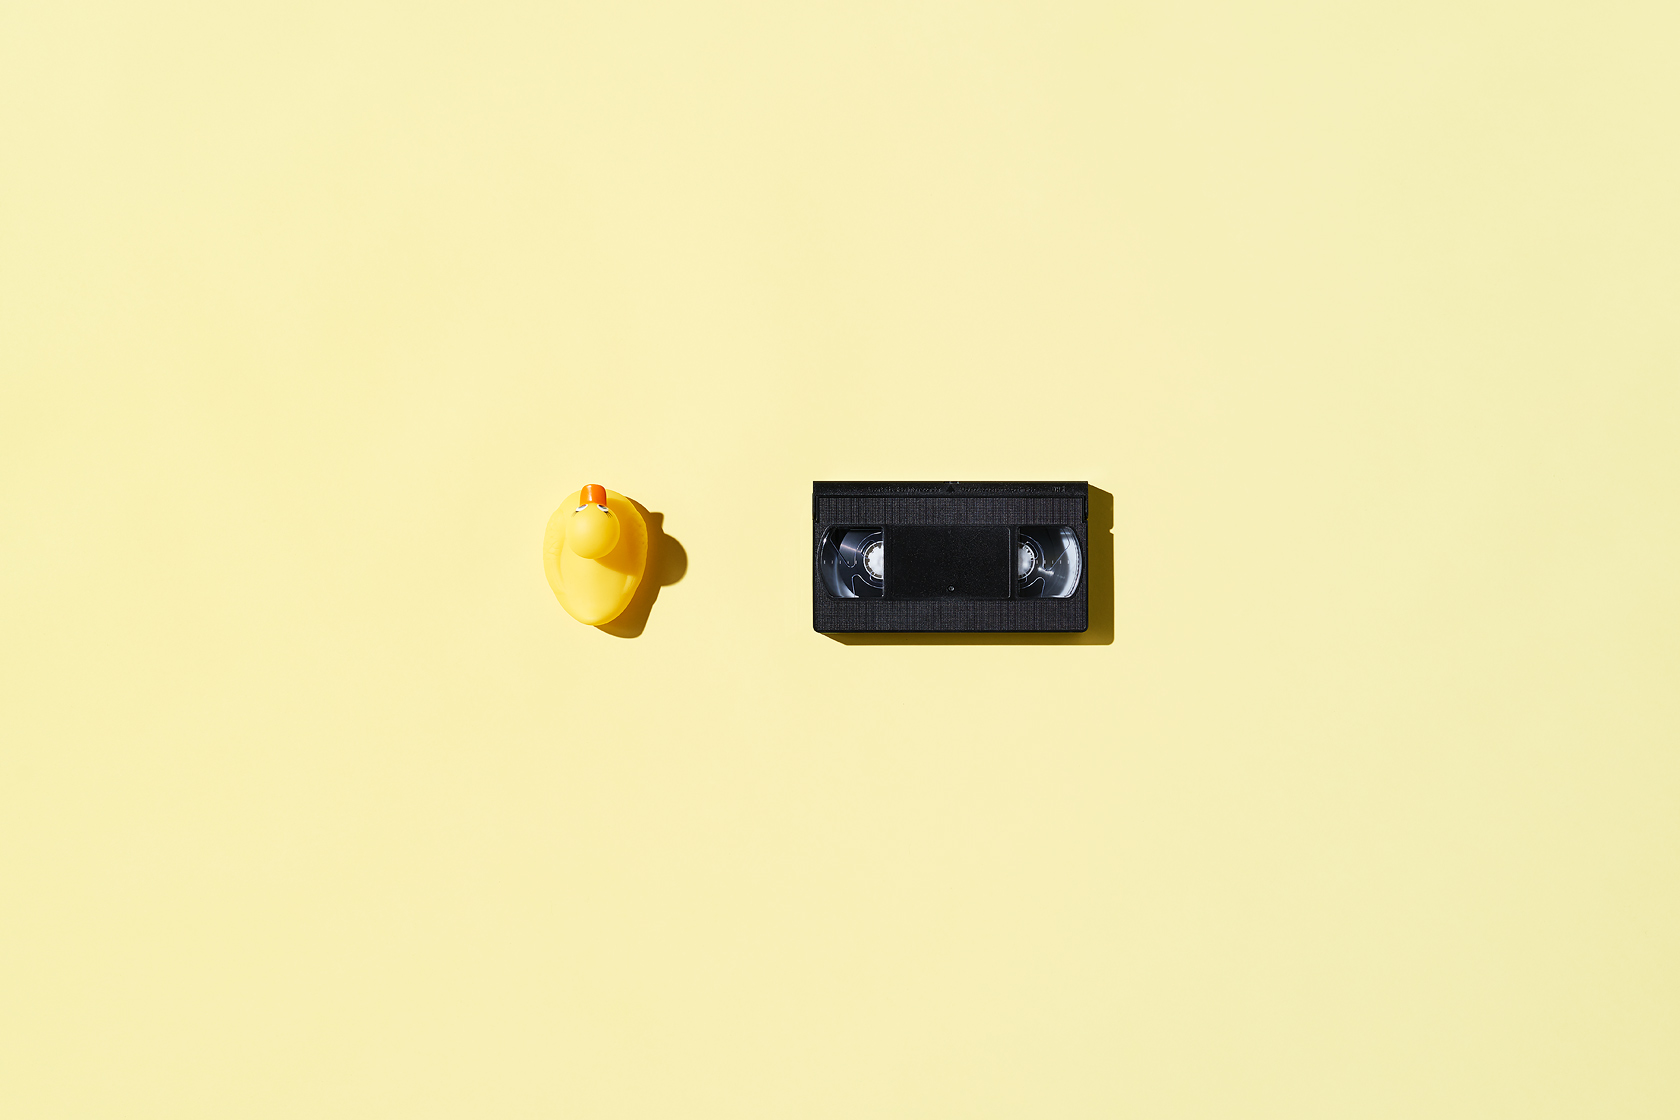 🦆 📼 // Conceptual Still Life Photography By Jens Kristian Balle